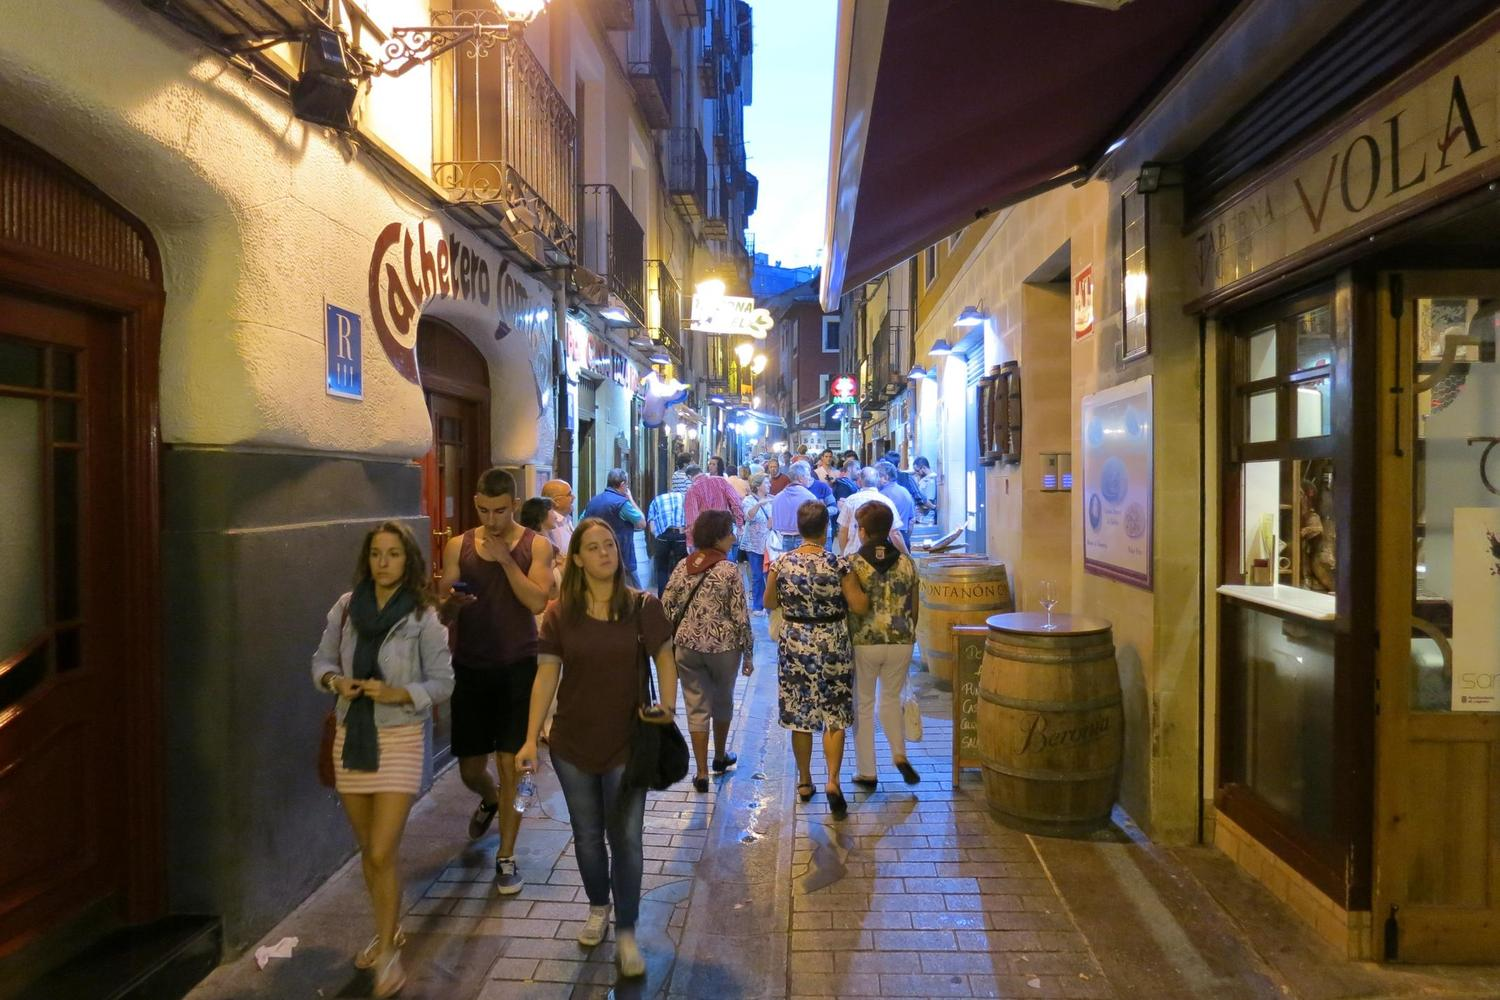 Nightlife of the Calle Laurel in Logrono